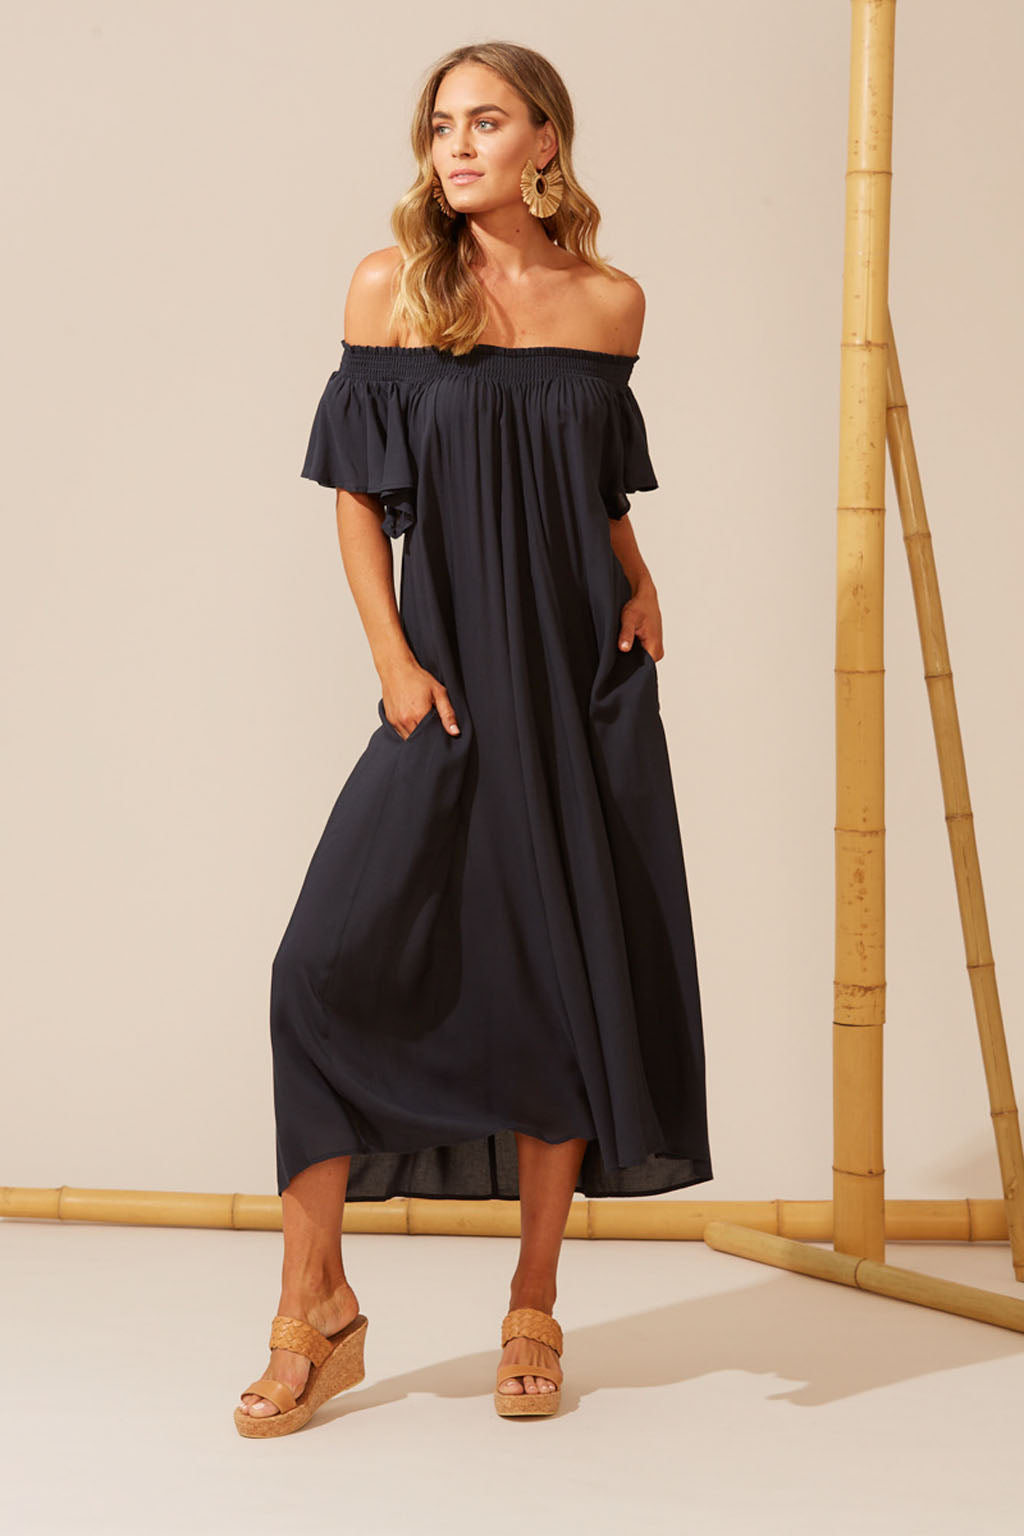 Haven Isola Off Shoulder Dress - One Size